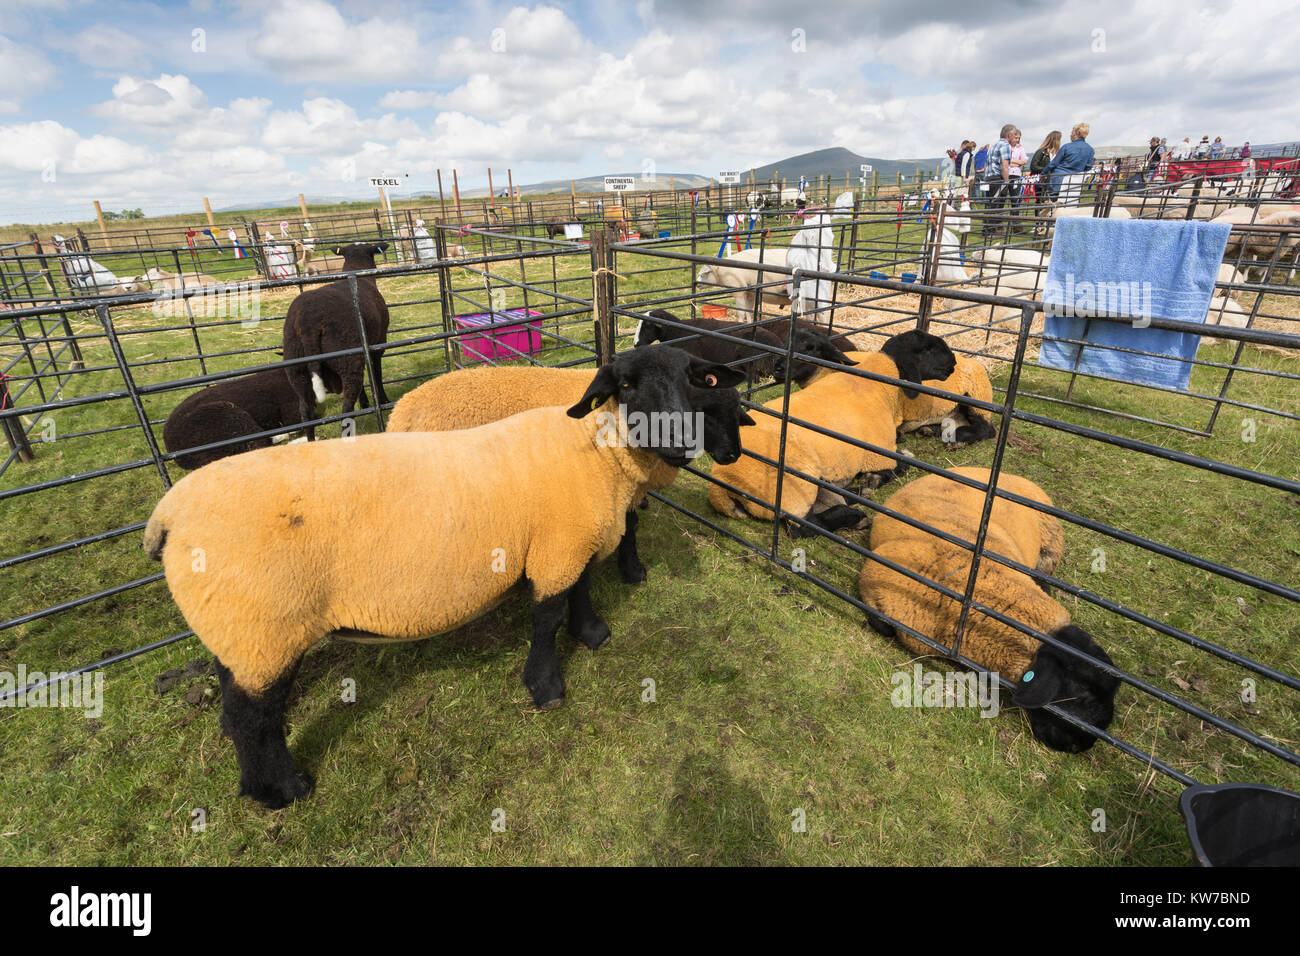 Suffolk sheep in pen, Appleby show, Appleby-in-Westmorland, Cumbria, August 2017 - Stock Image